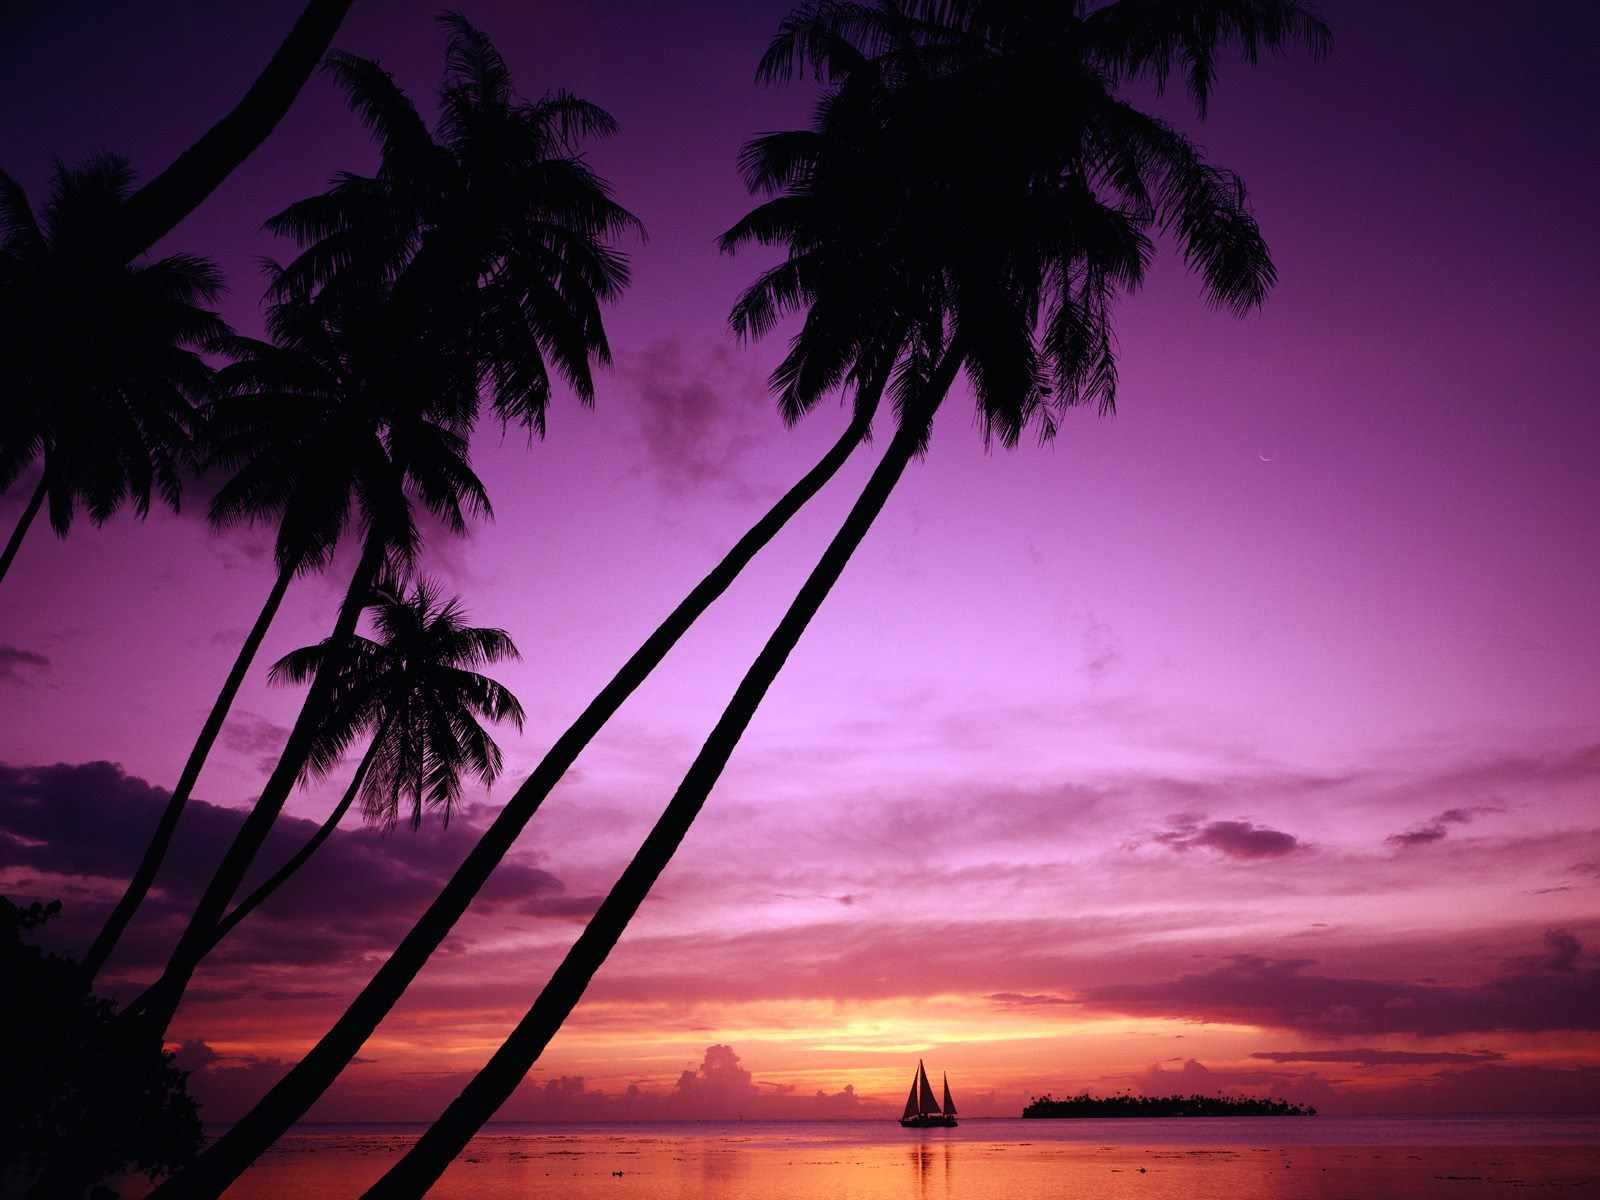 Purple Wallpaper Hd Imagenes De Para 237 Sos Tropicales Playas Paradis 237 Acas Beach